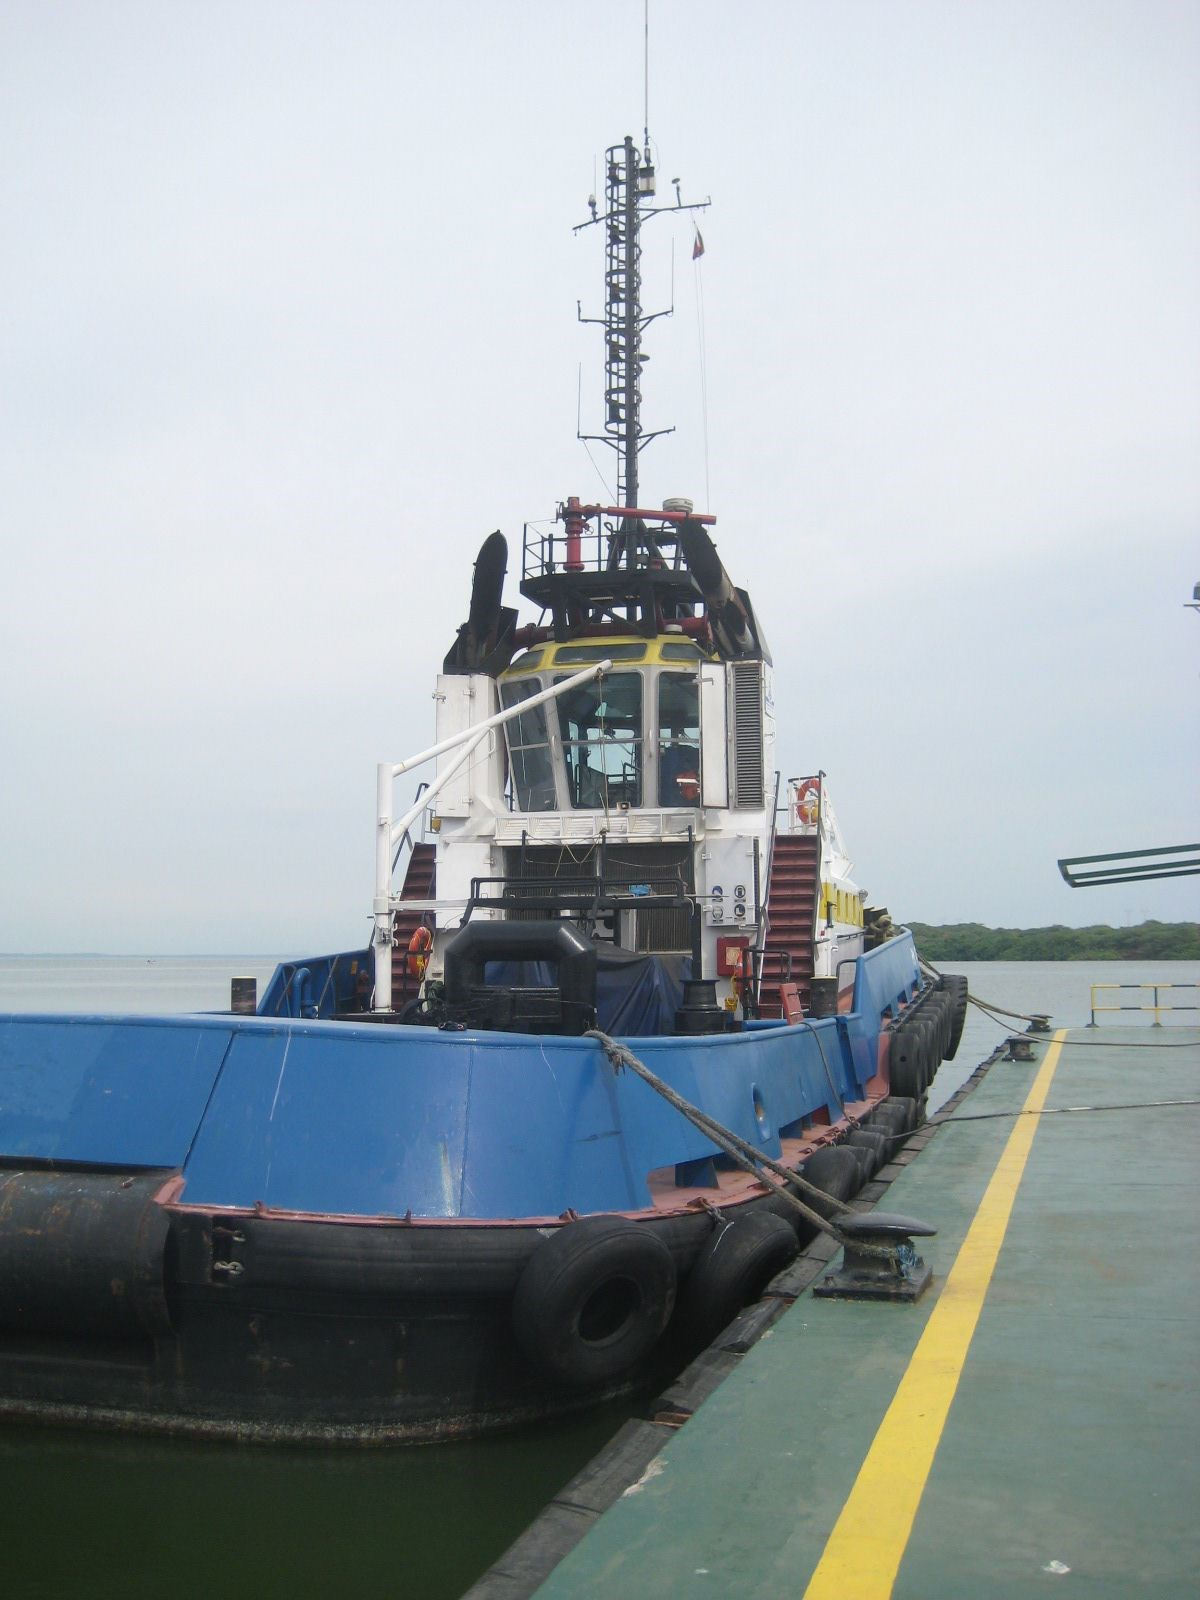 Army Tug Engine Room: Second Hand DAMEN Stan Tug For Sale 2909 For Towing